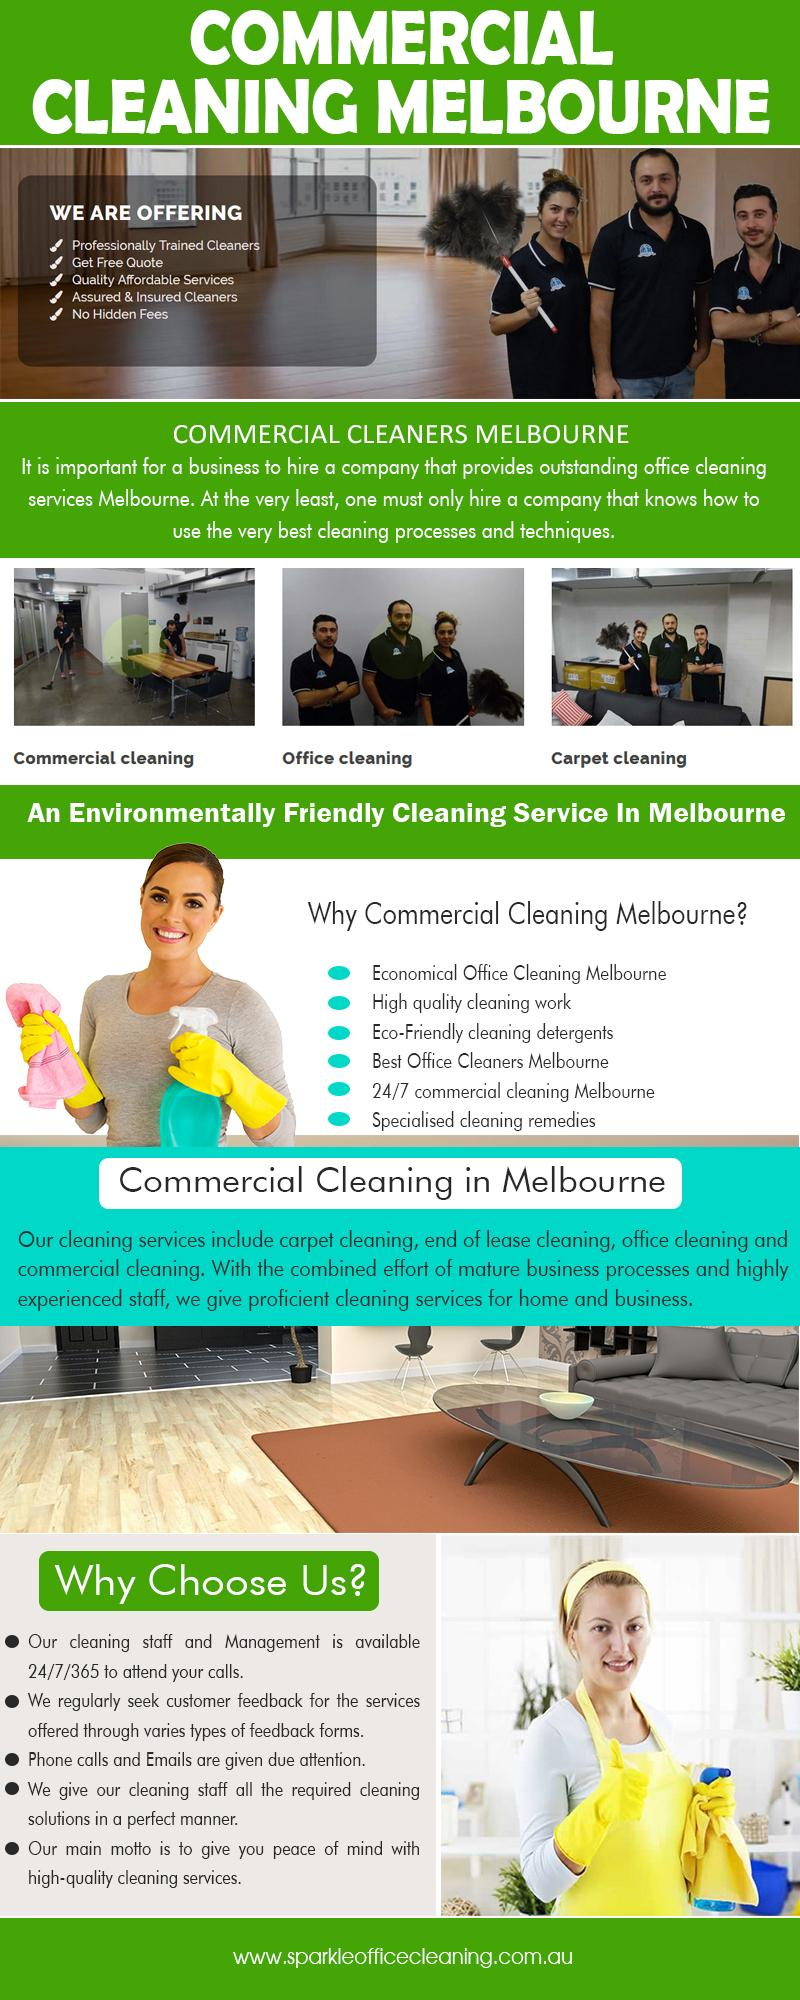 Commercial Cleaning Melbourne | sparkleofficecleaning.com.au